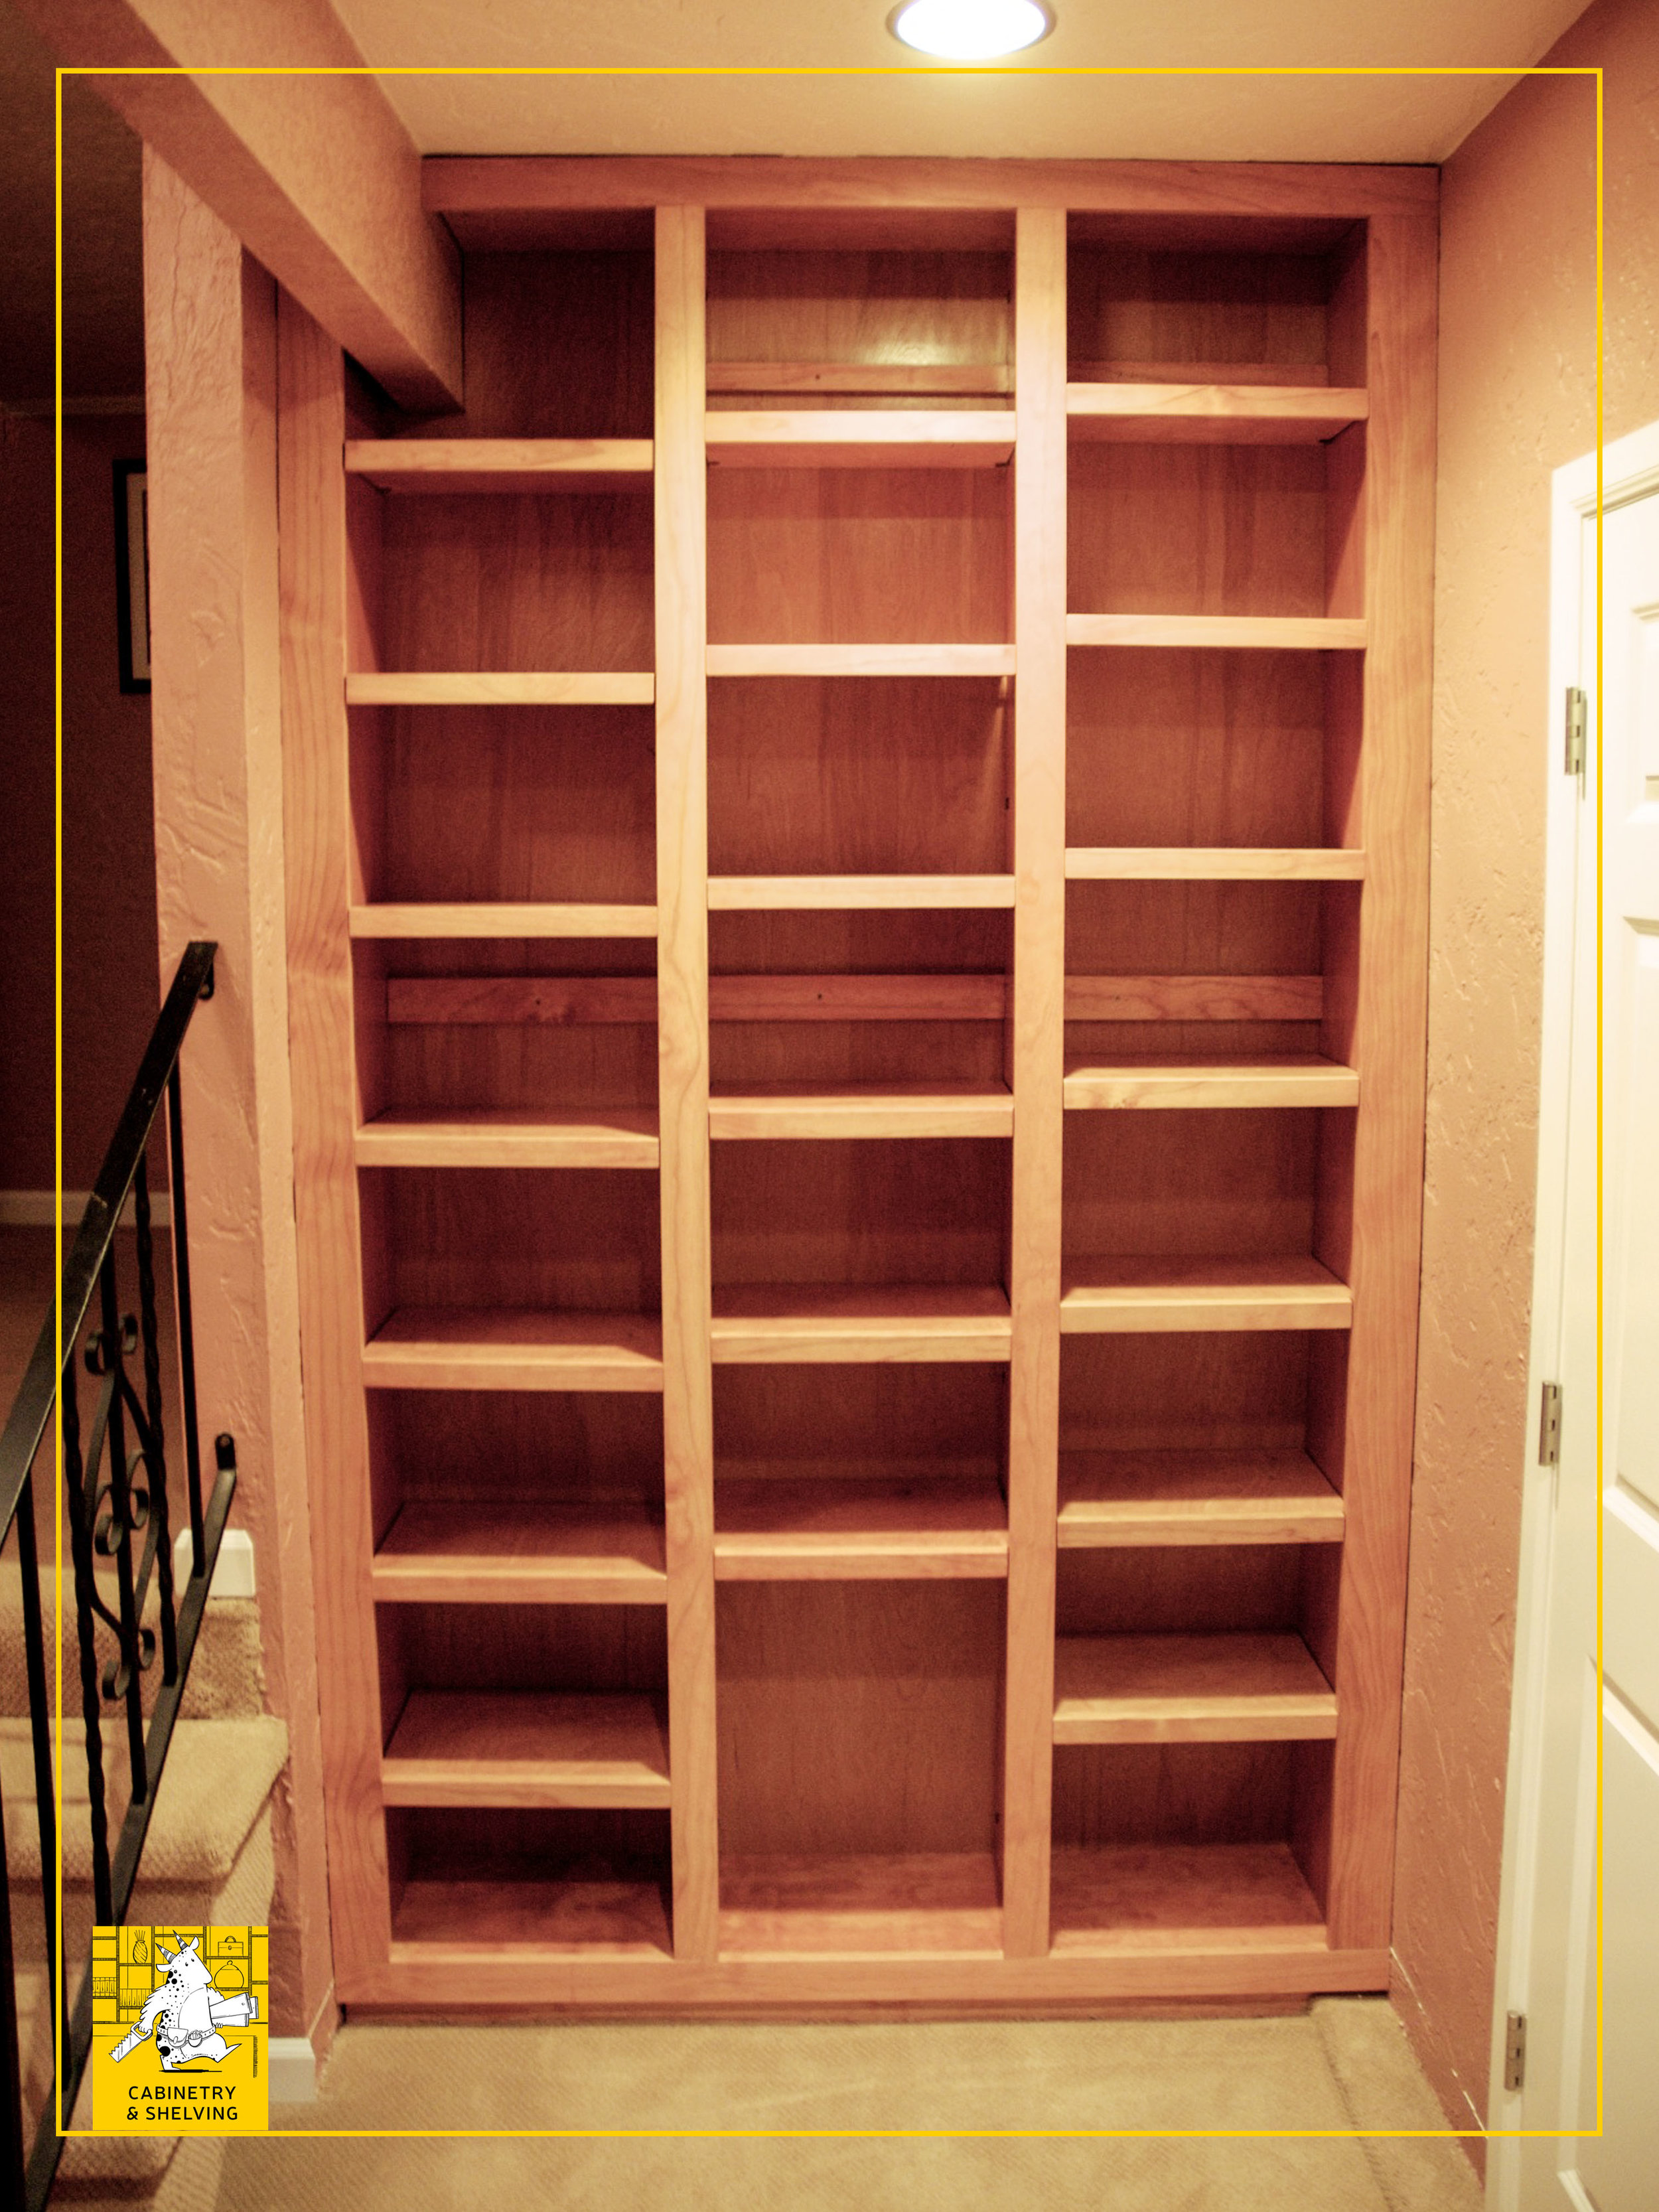 cabinetry 2 after 1.jpg